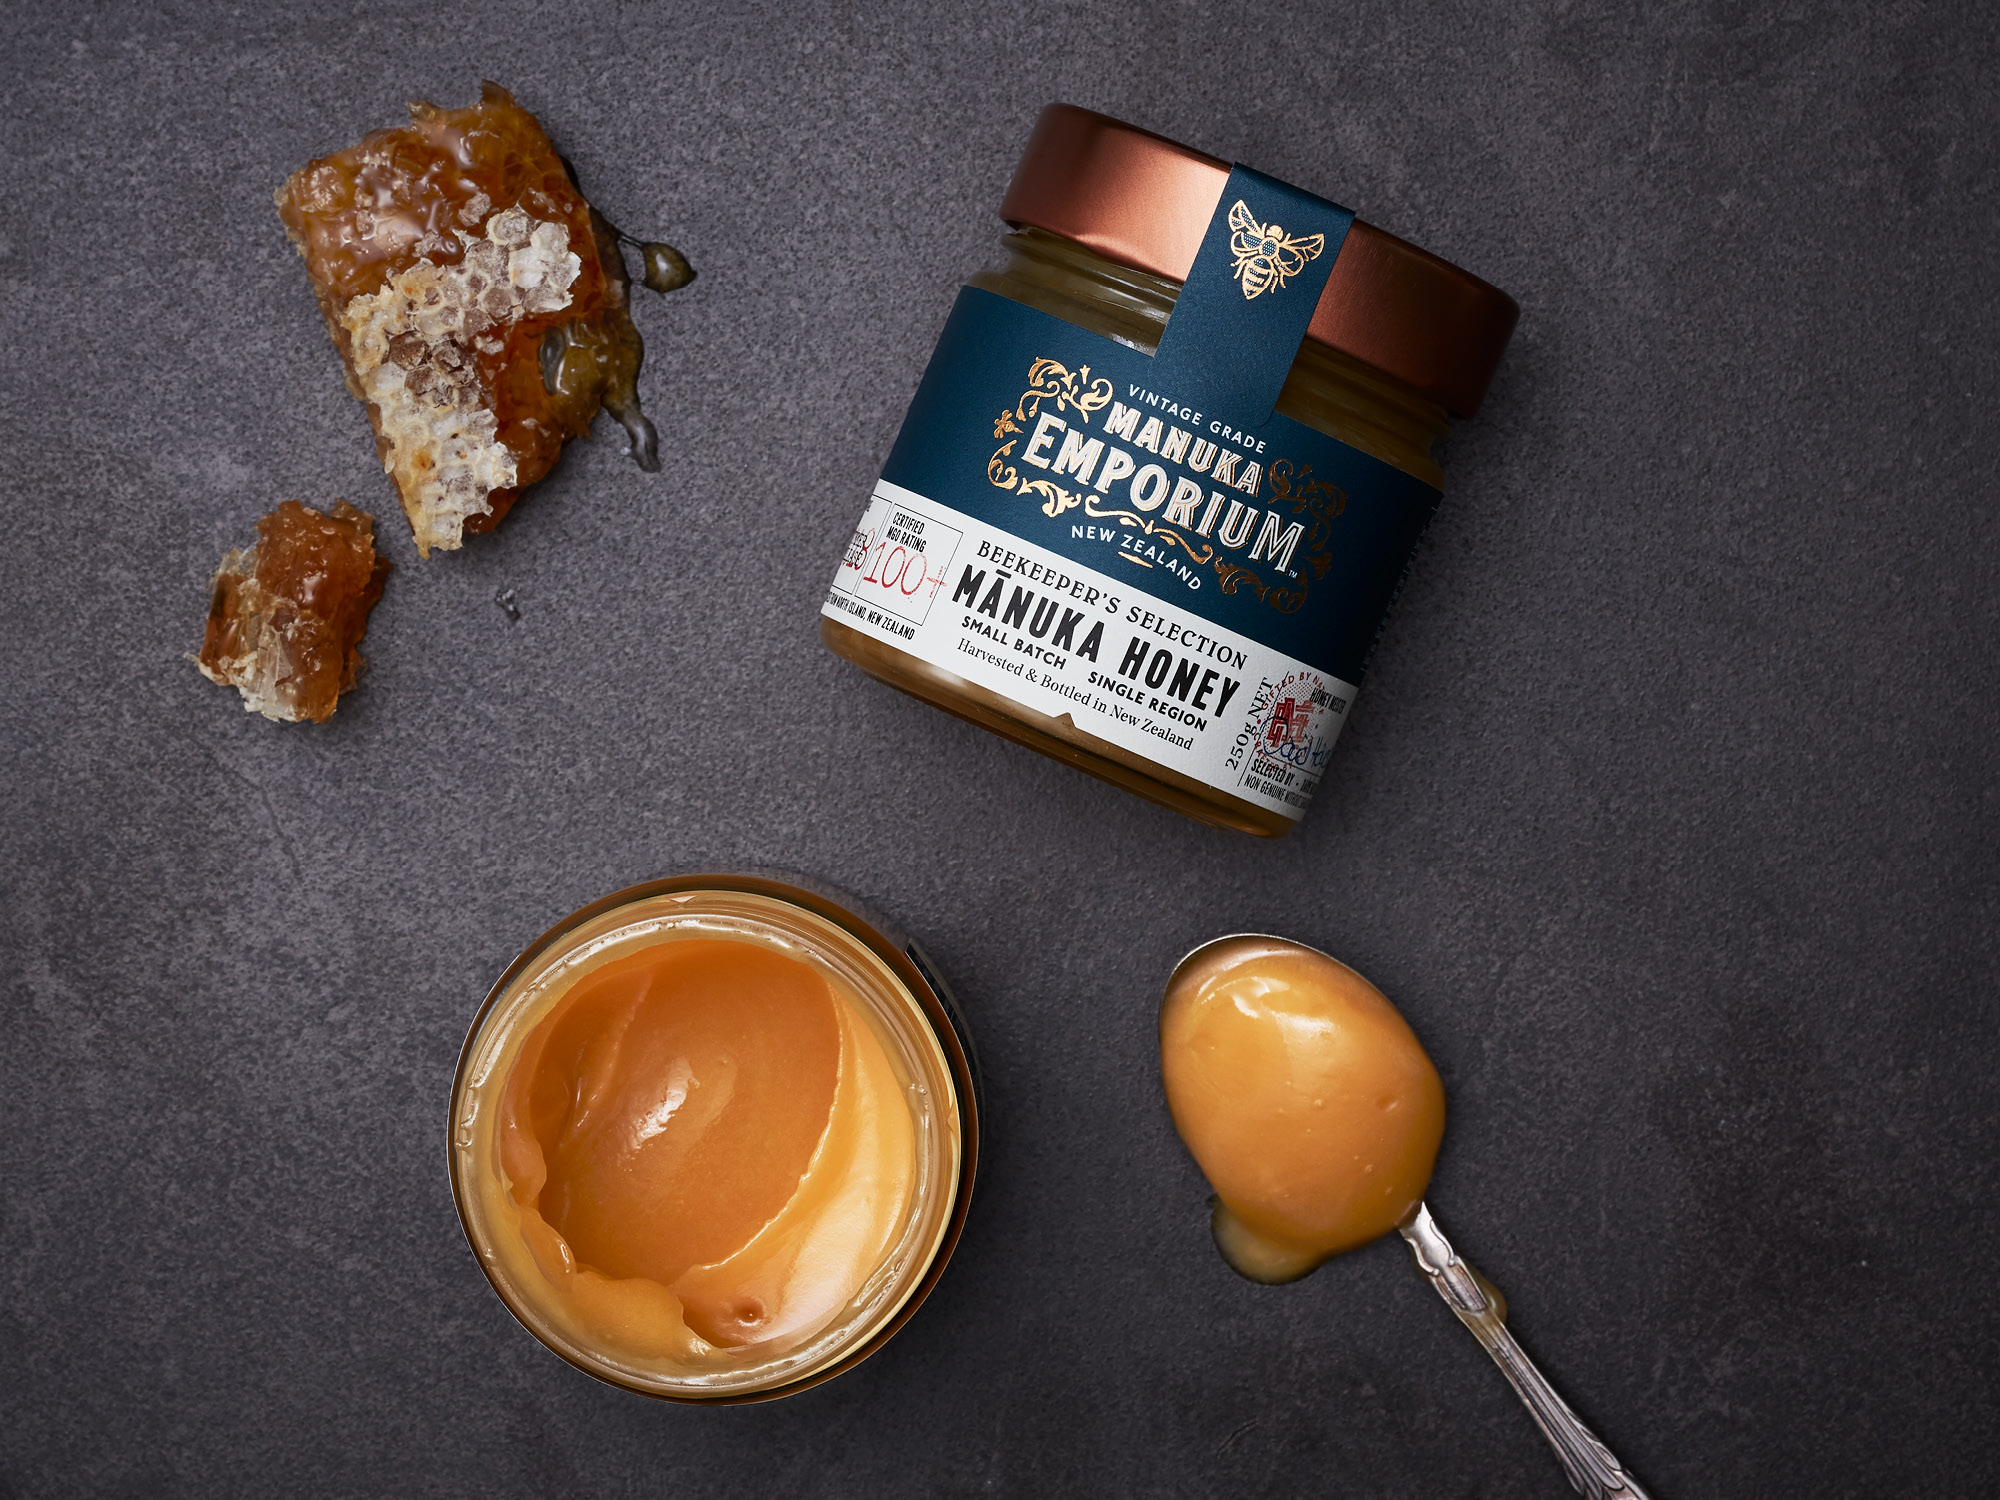 Onfire Design Manuka Emporium Honey Packaging Branding Design 26